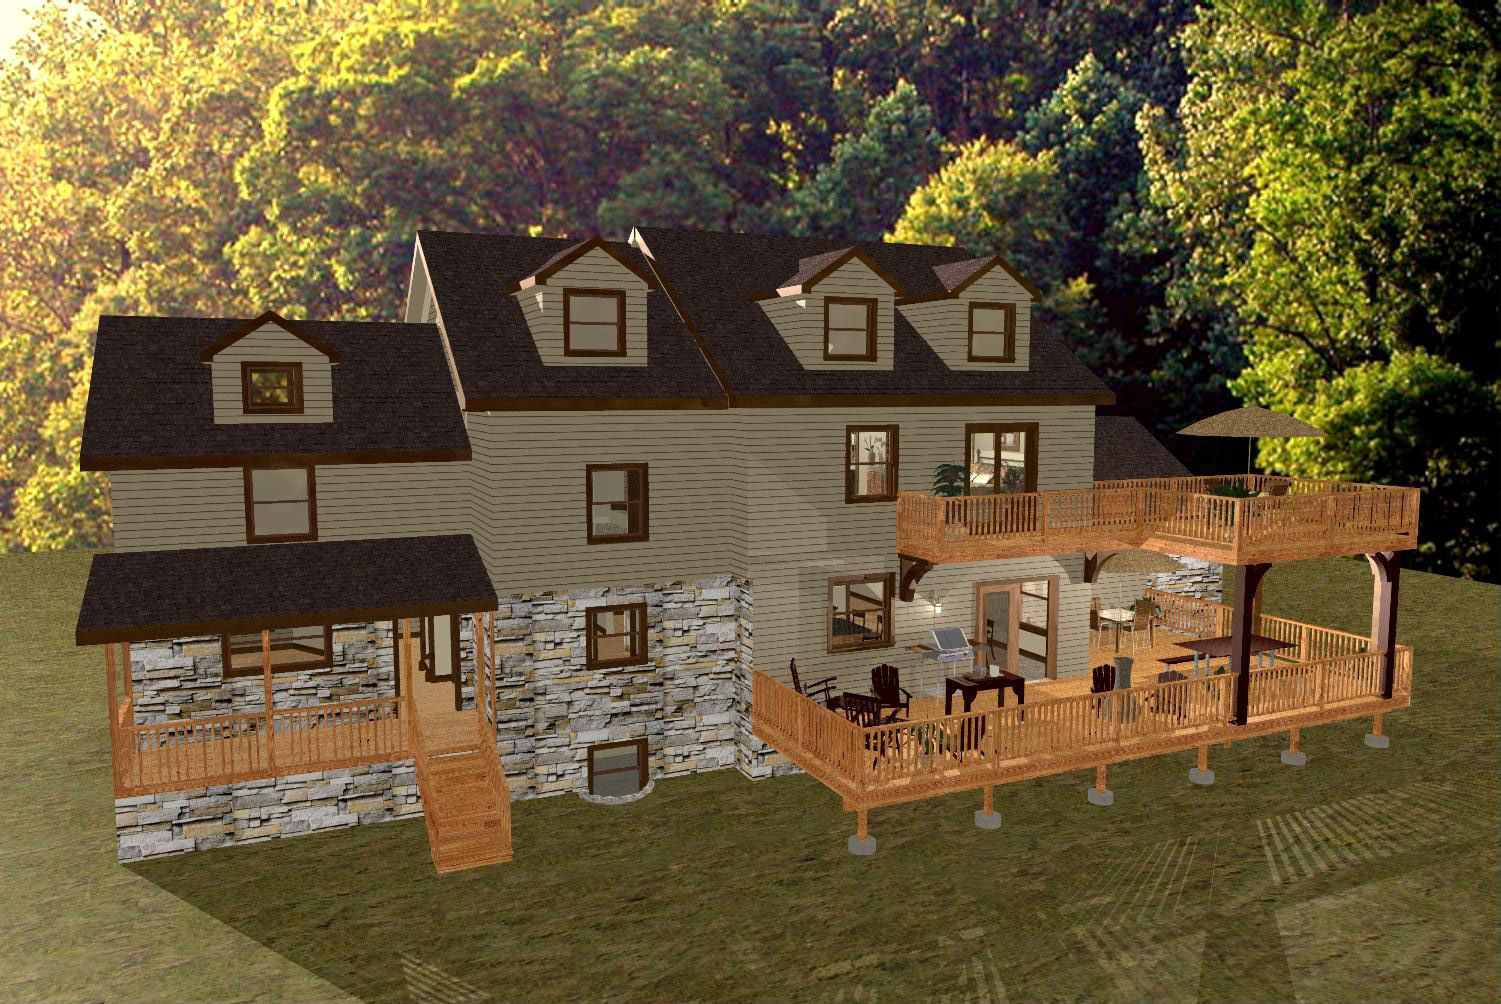 High Quality Outdoor+Deck+Plans+for+two+story+houses | Two Story